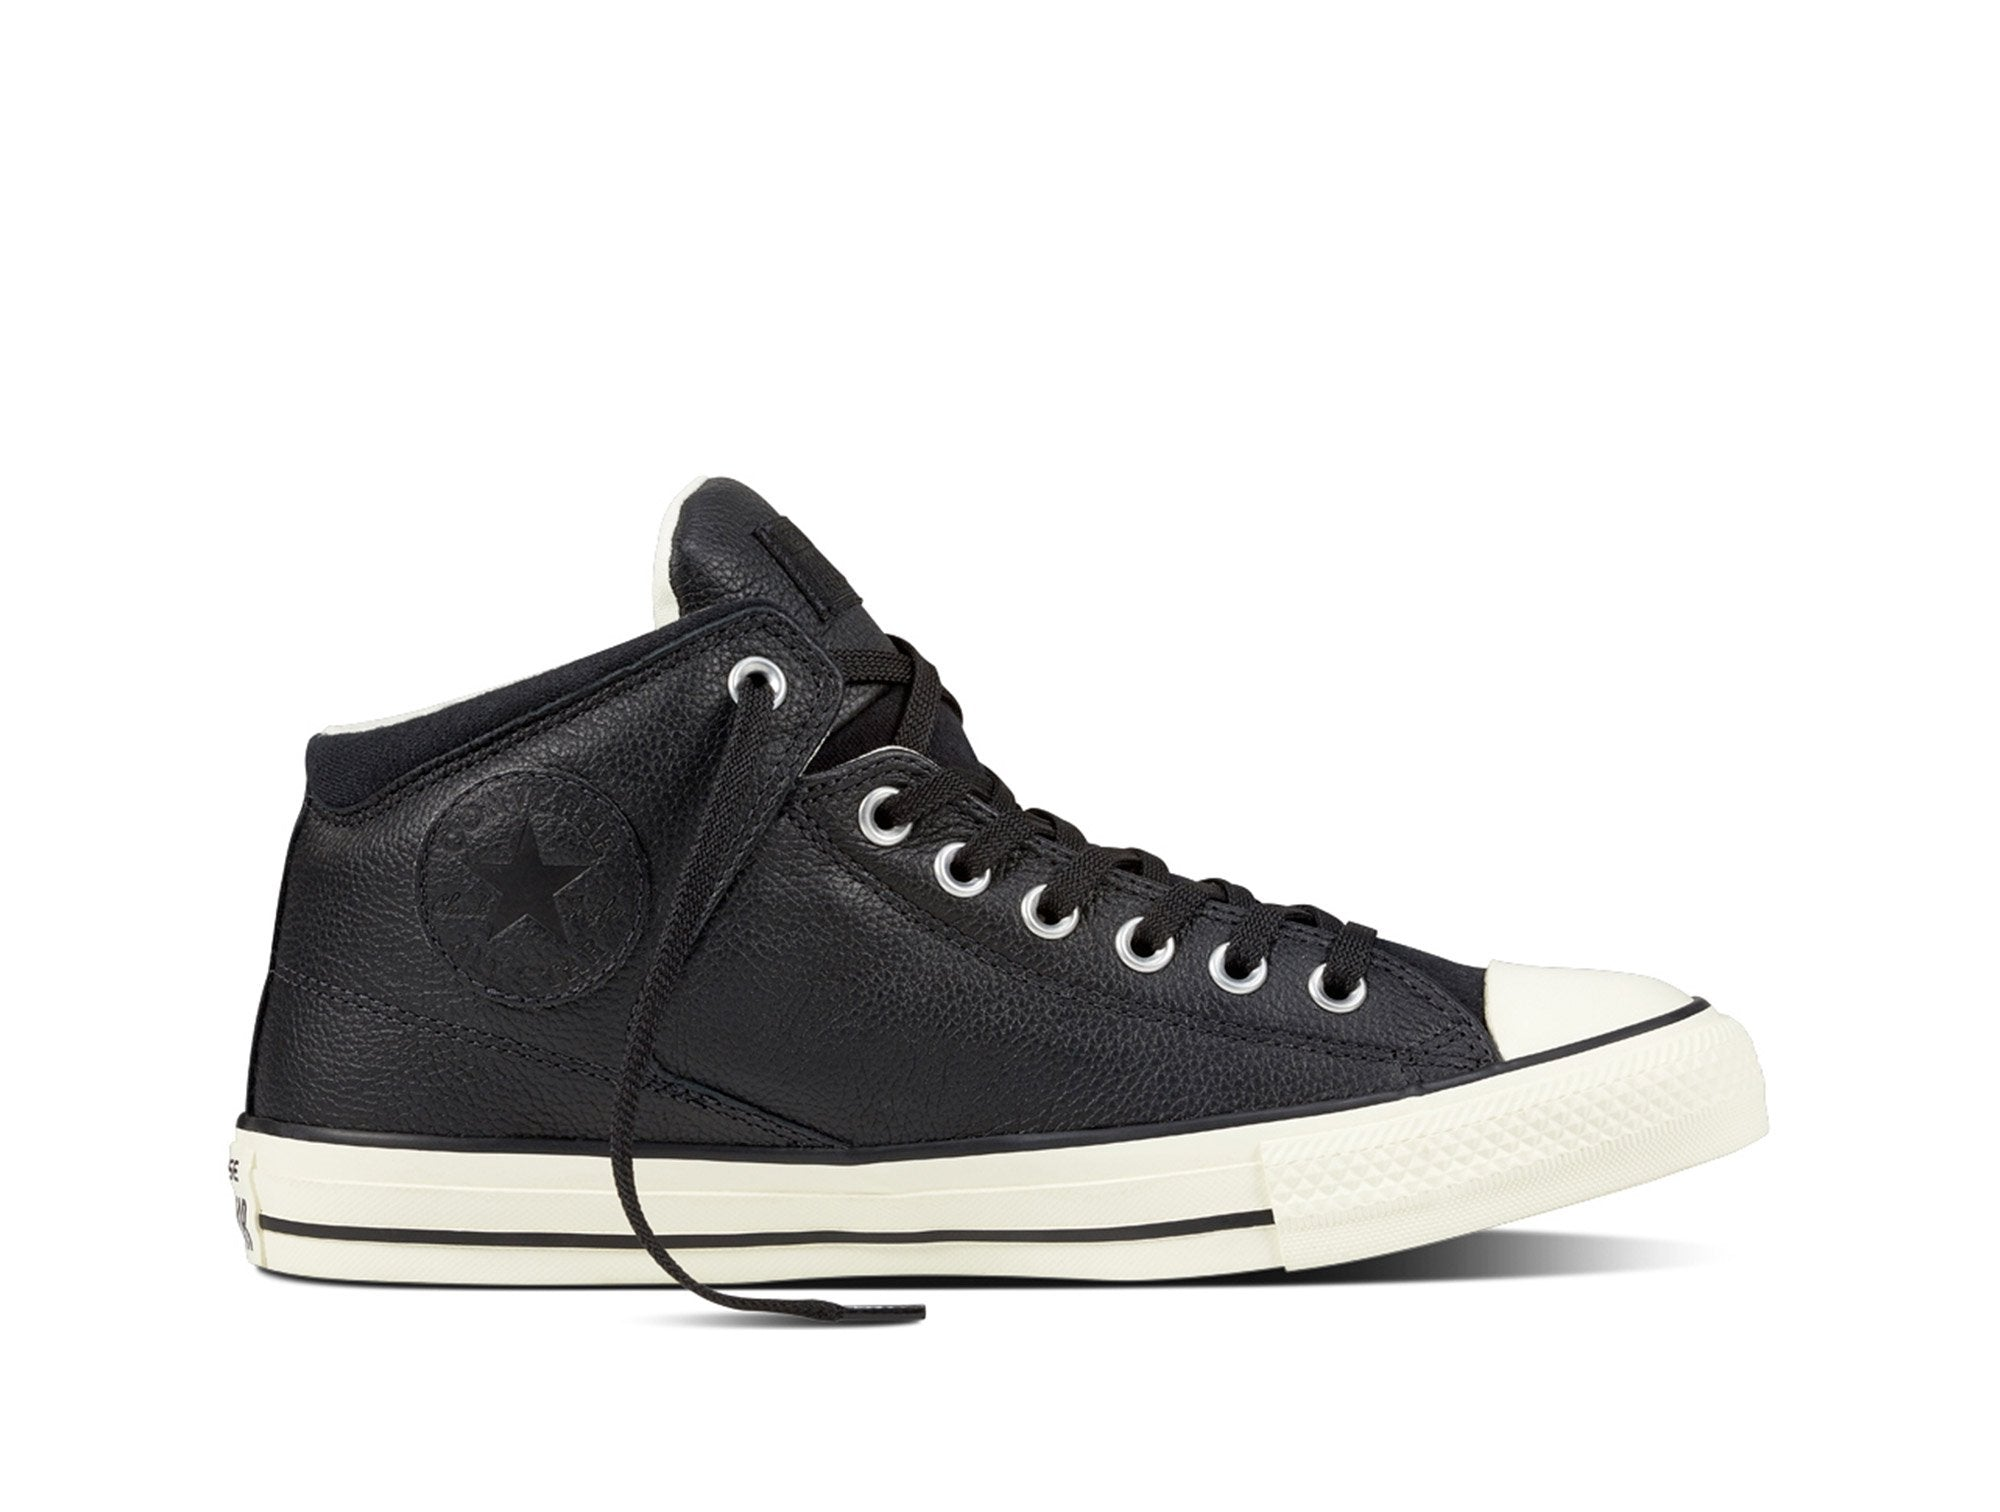 Zapatilla Converse C/T All Star High Street Hi Bk/Bk/Egret